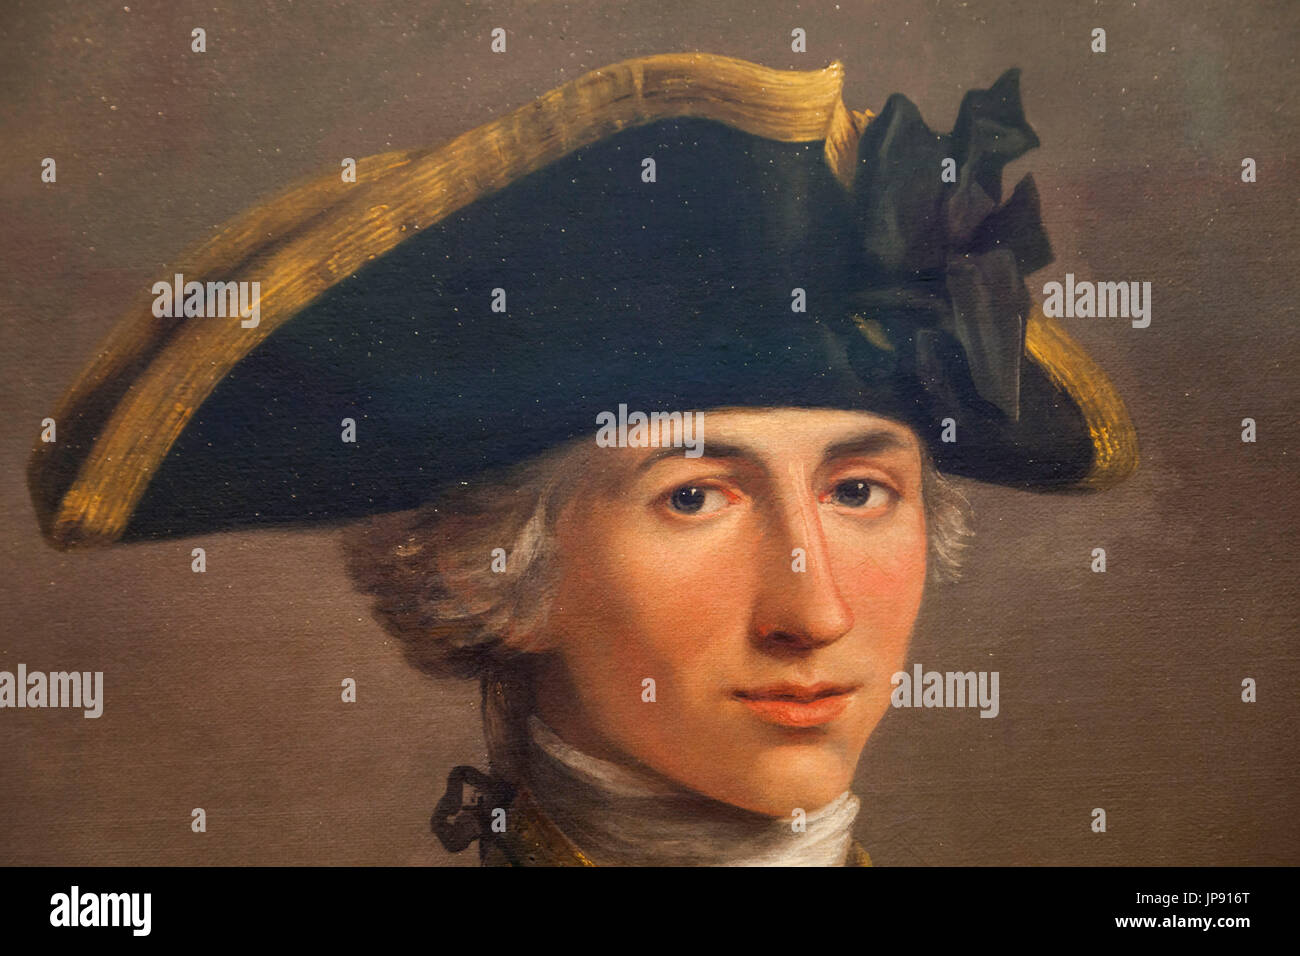 England, London, Greenwich, National Maritime Museum, Portrait of Captain Horatio Nelson by John Francis Rigaud dated 1777-81 Stock Photo